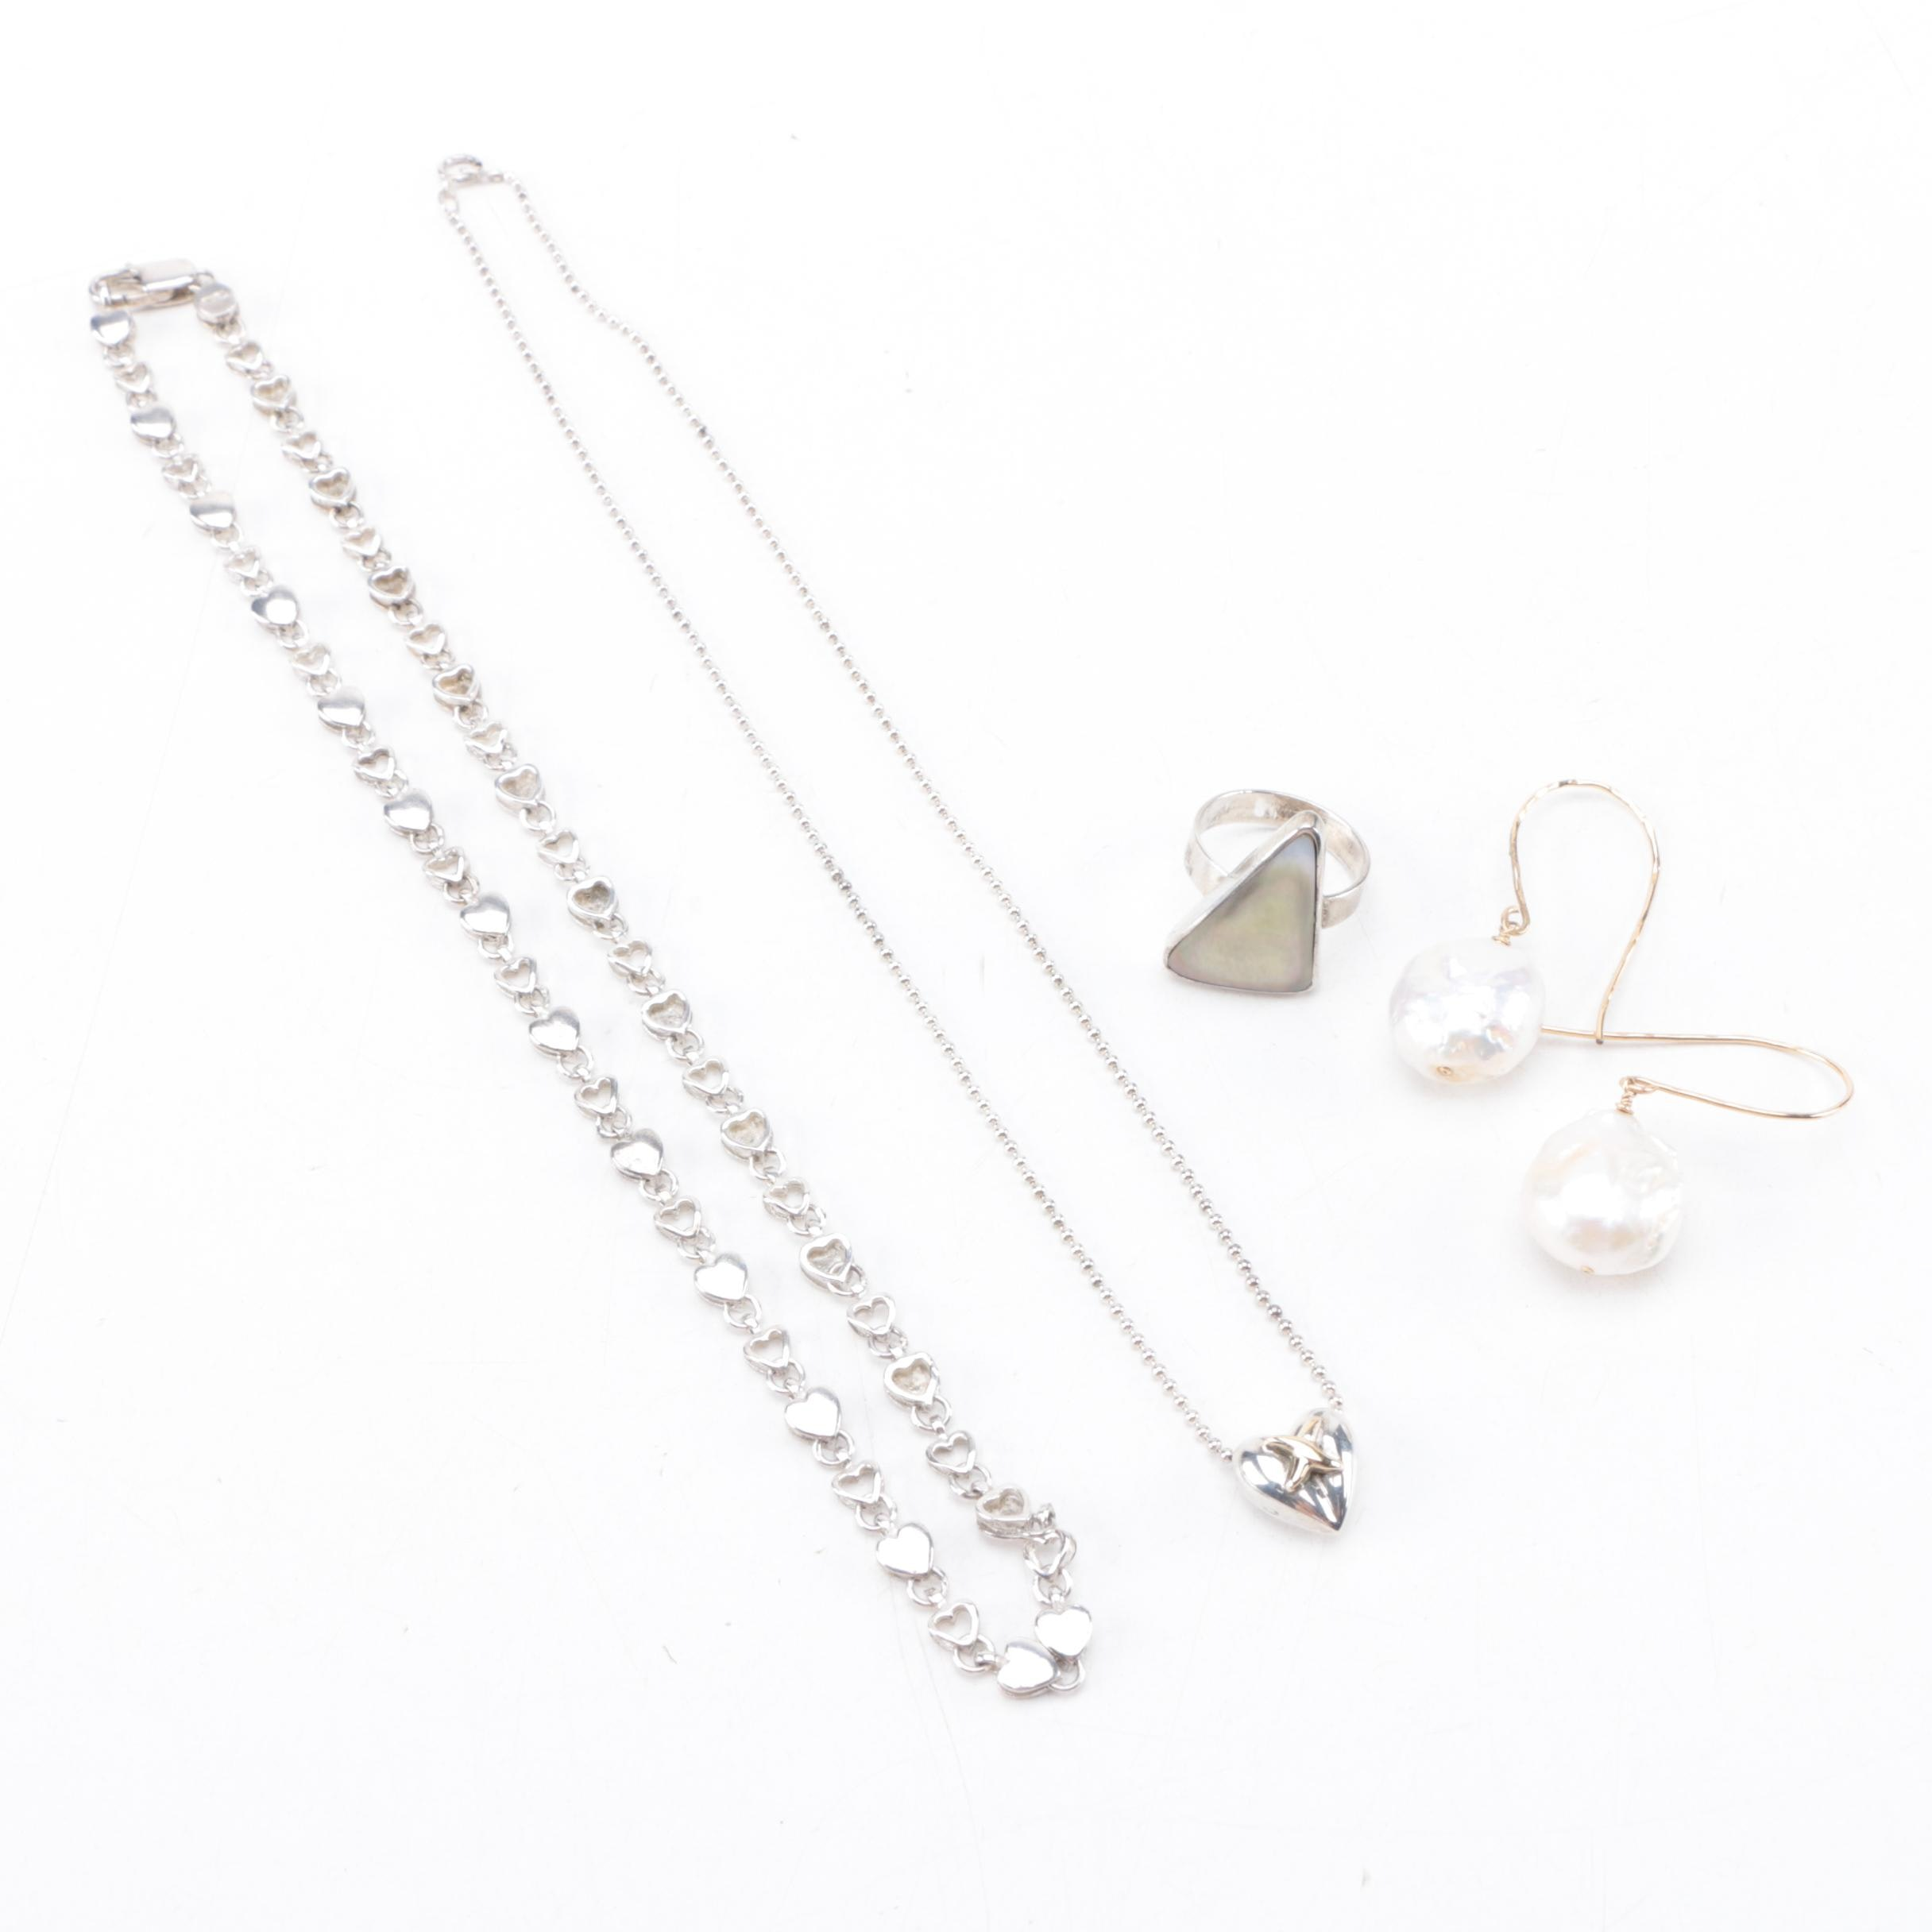 Jewelry Selection Including 950, Sterling Silver and Cultured Pearl